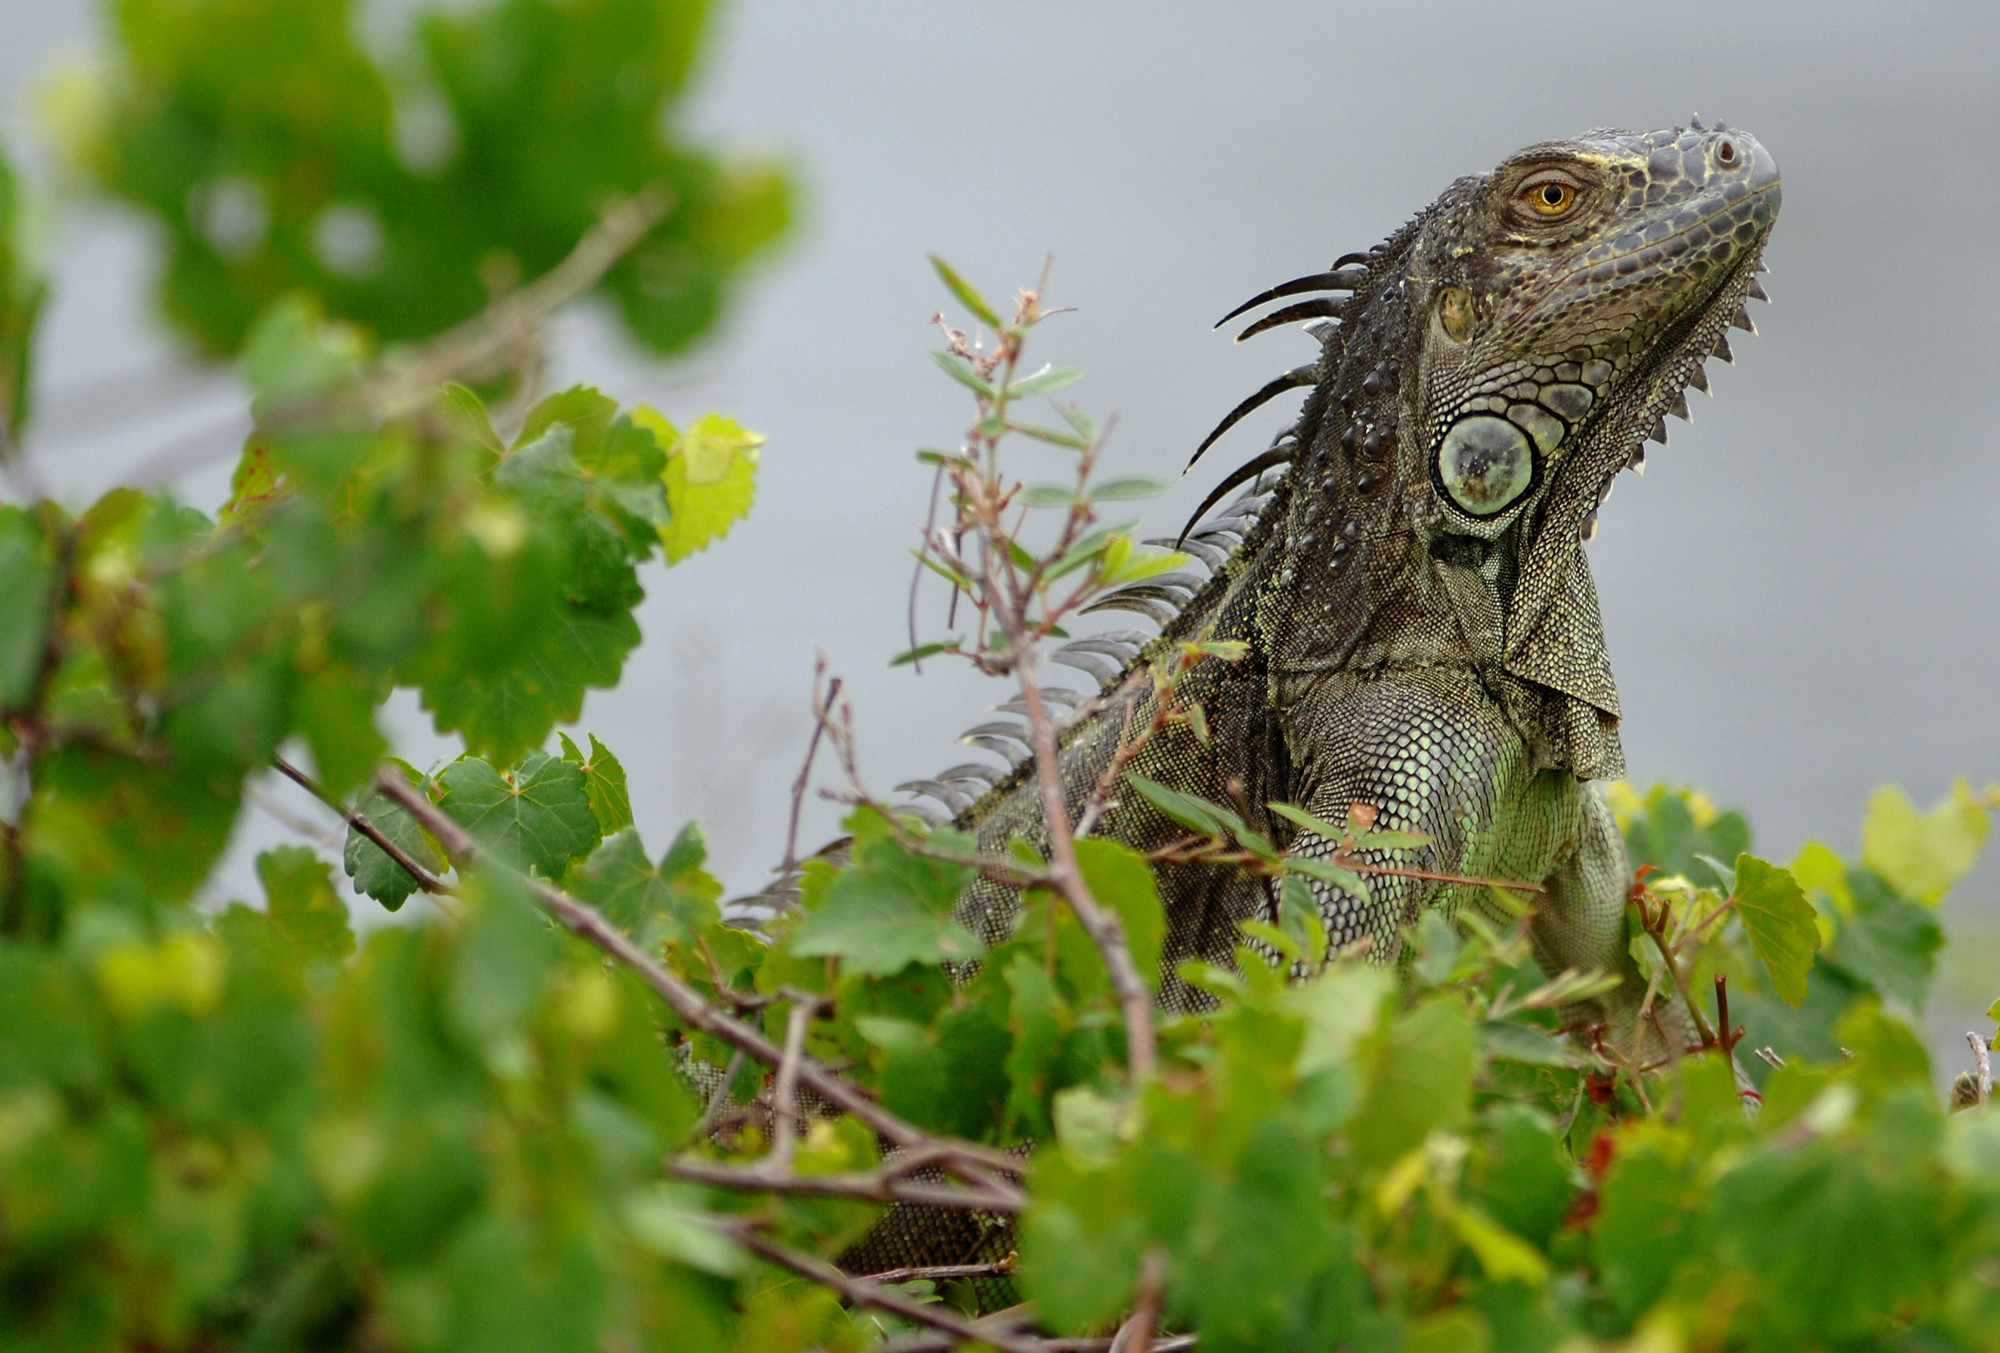 How To Deal With Iguanas As Their Numbers Rise In South Florida